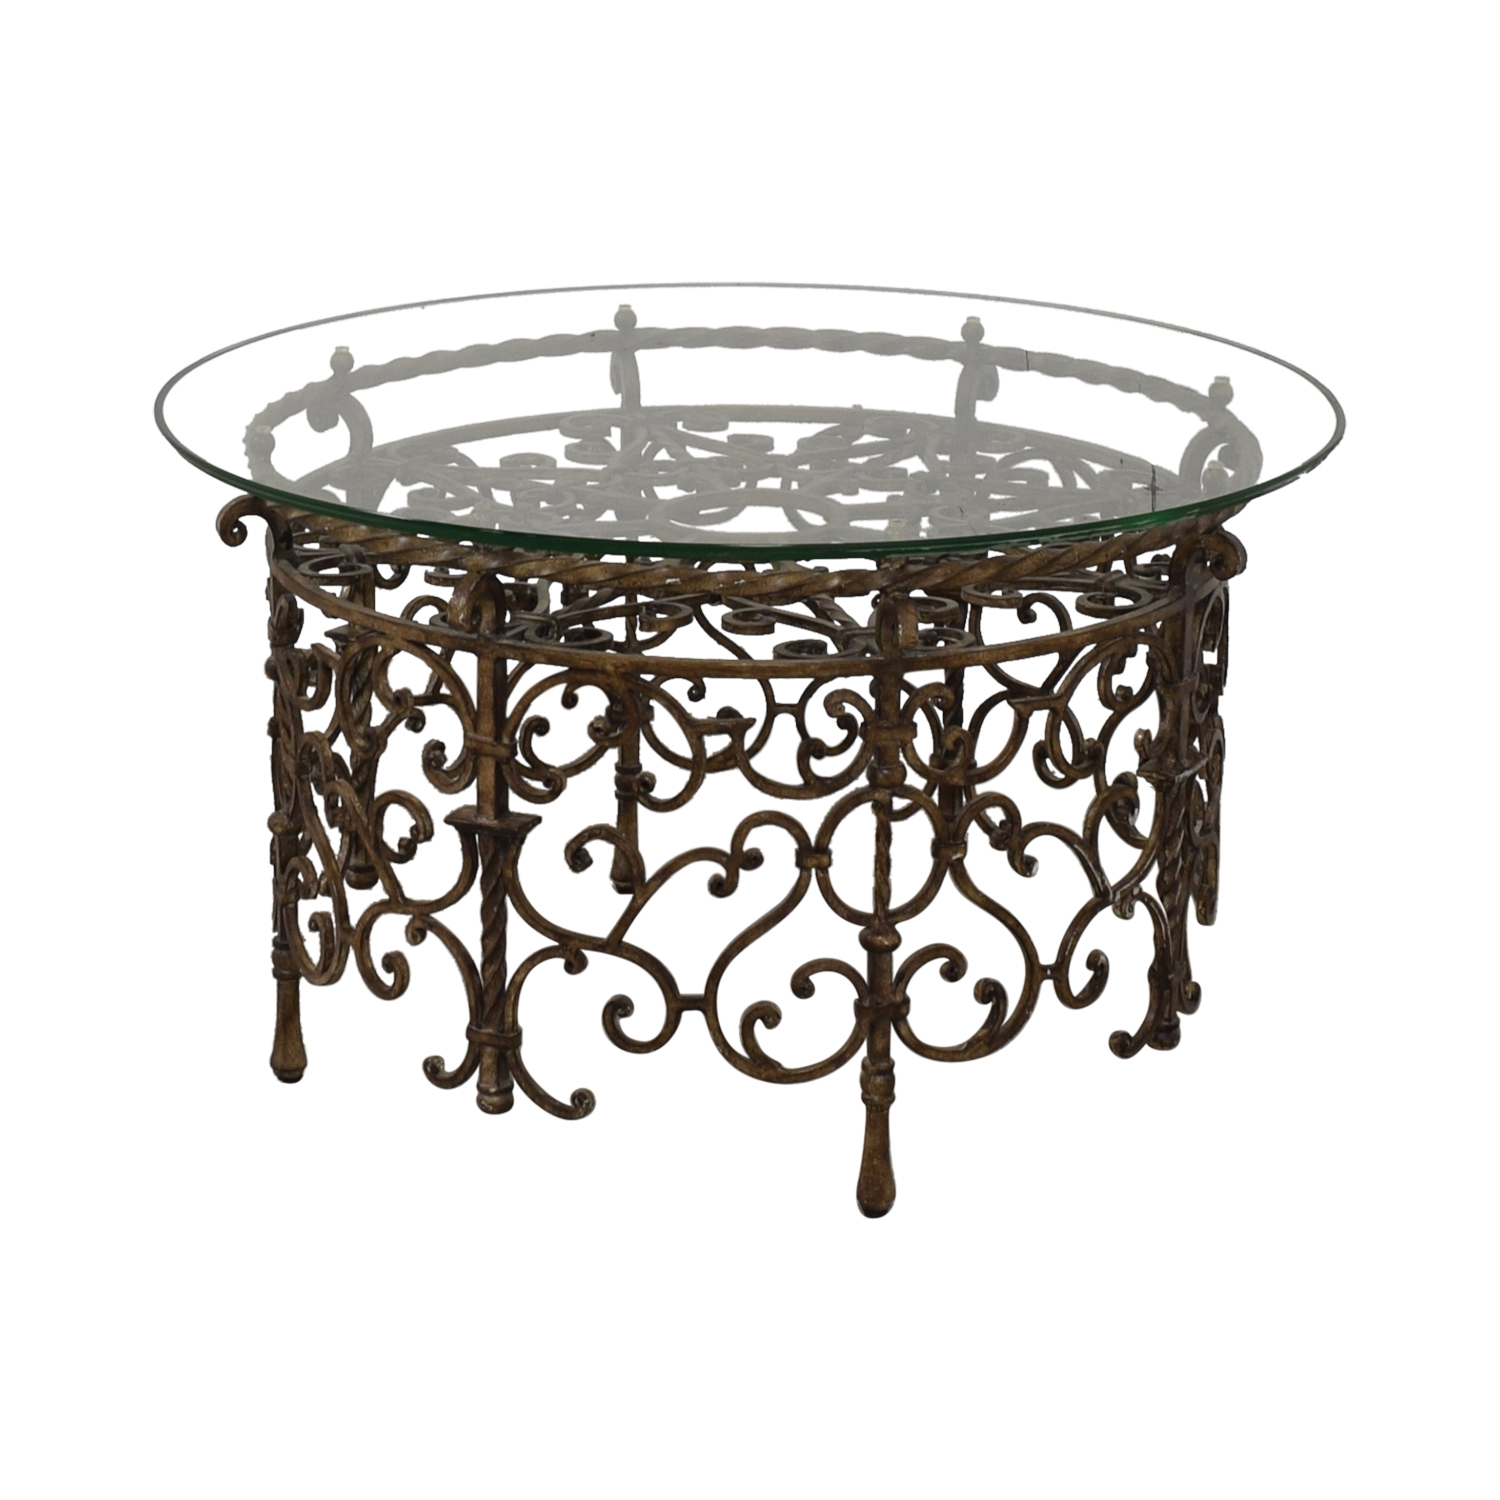 Glass and Metal Scrolled Coffee Table / Tables